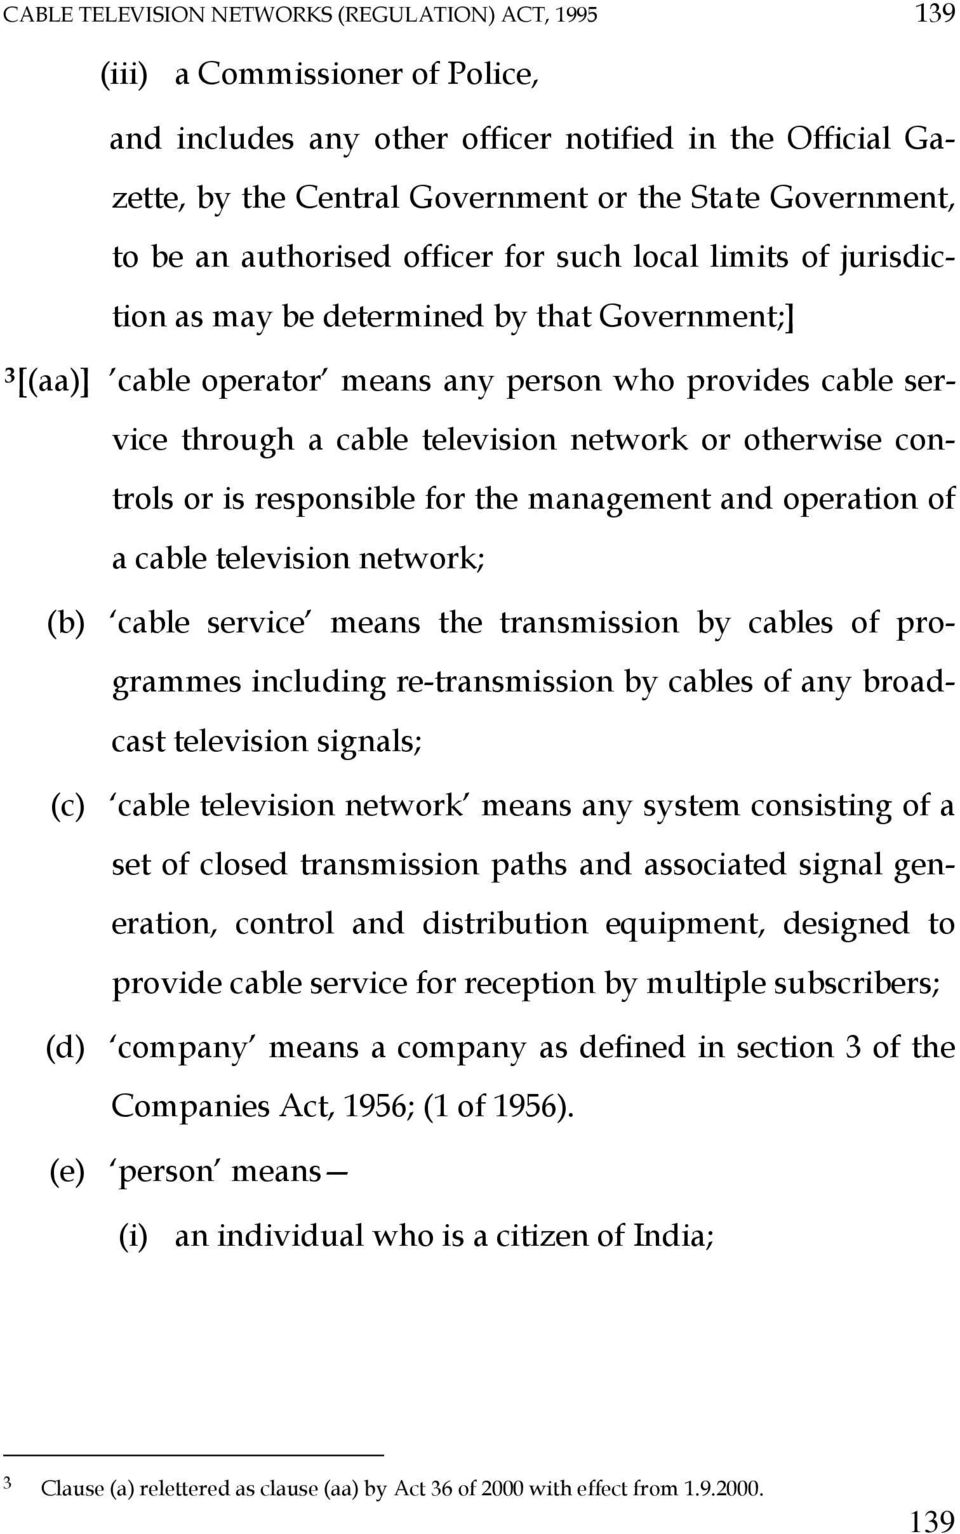 cable television network or otherwise controls or is responsible for the management and operation of a cable television network; (b) cable service means the transmission by cables of programmes